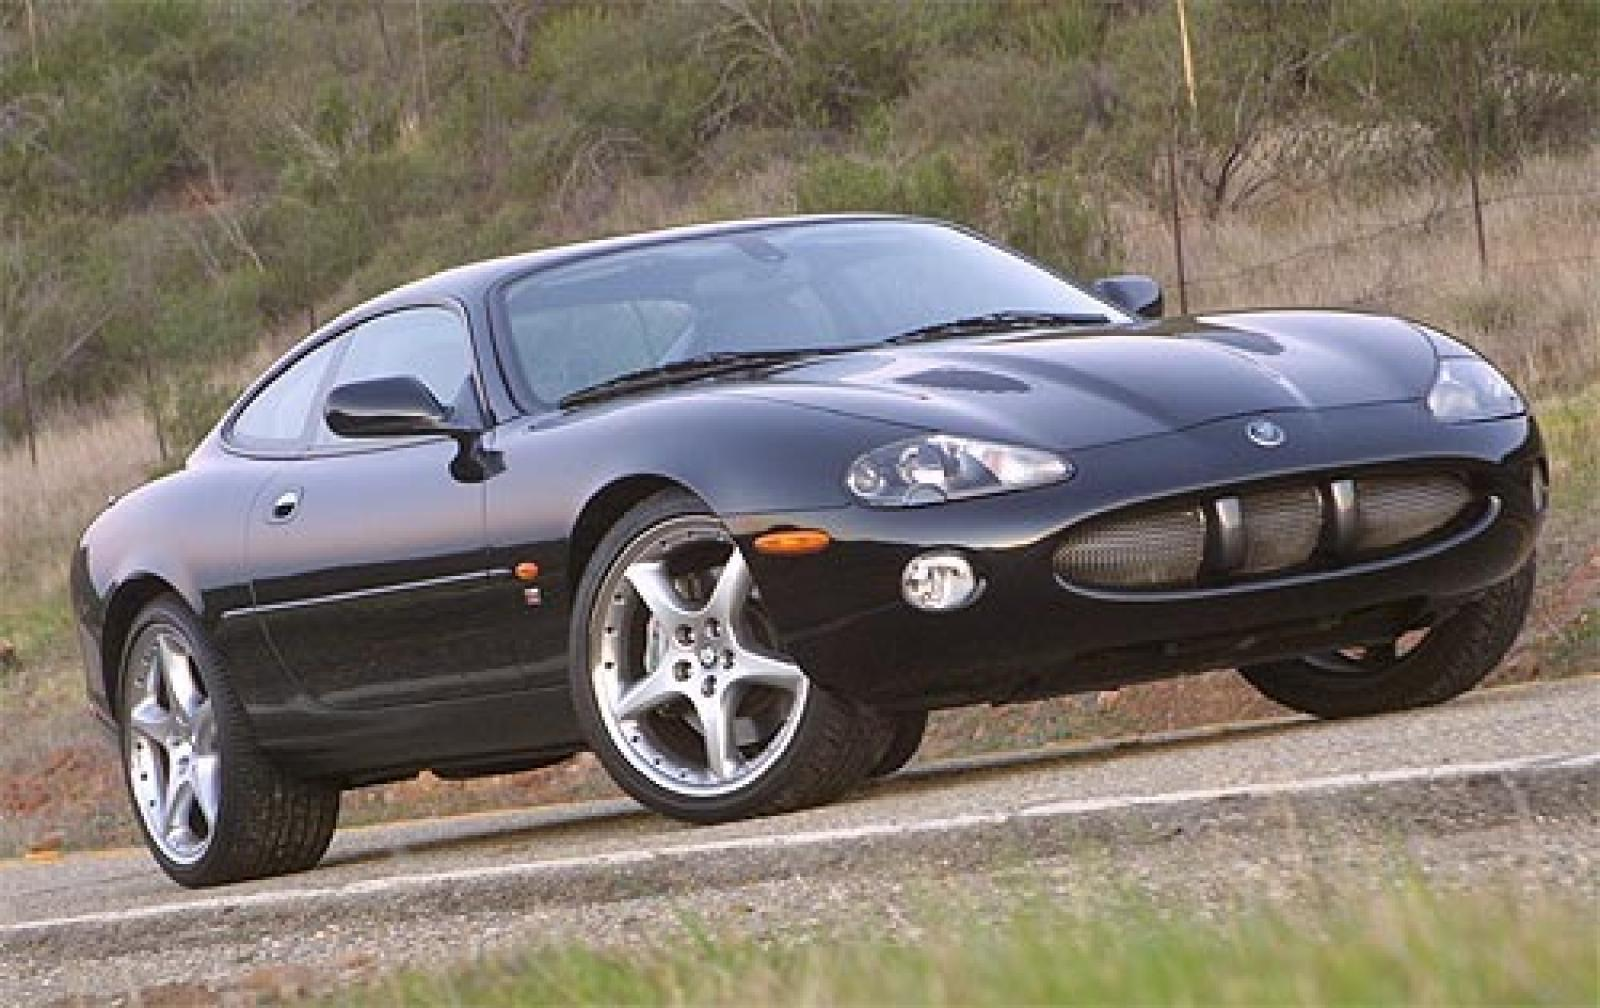 2004 jaguar xk series information and photos zombiedrive. Black Bedroom Furniture Sets. Home Design Ideas